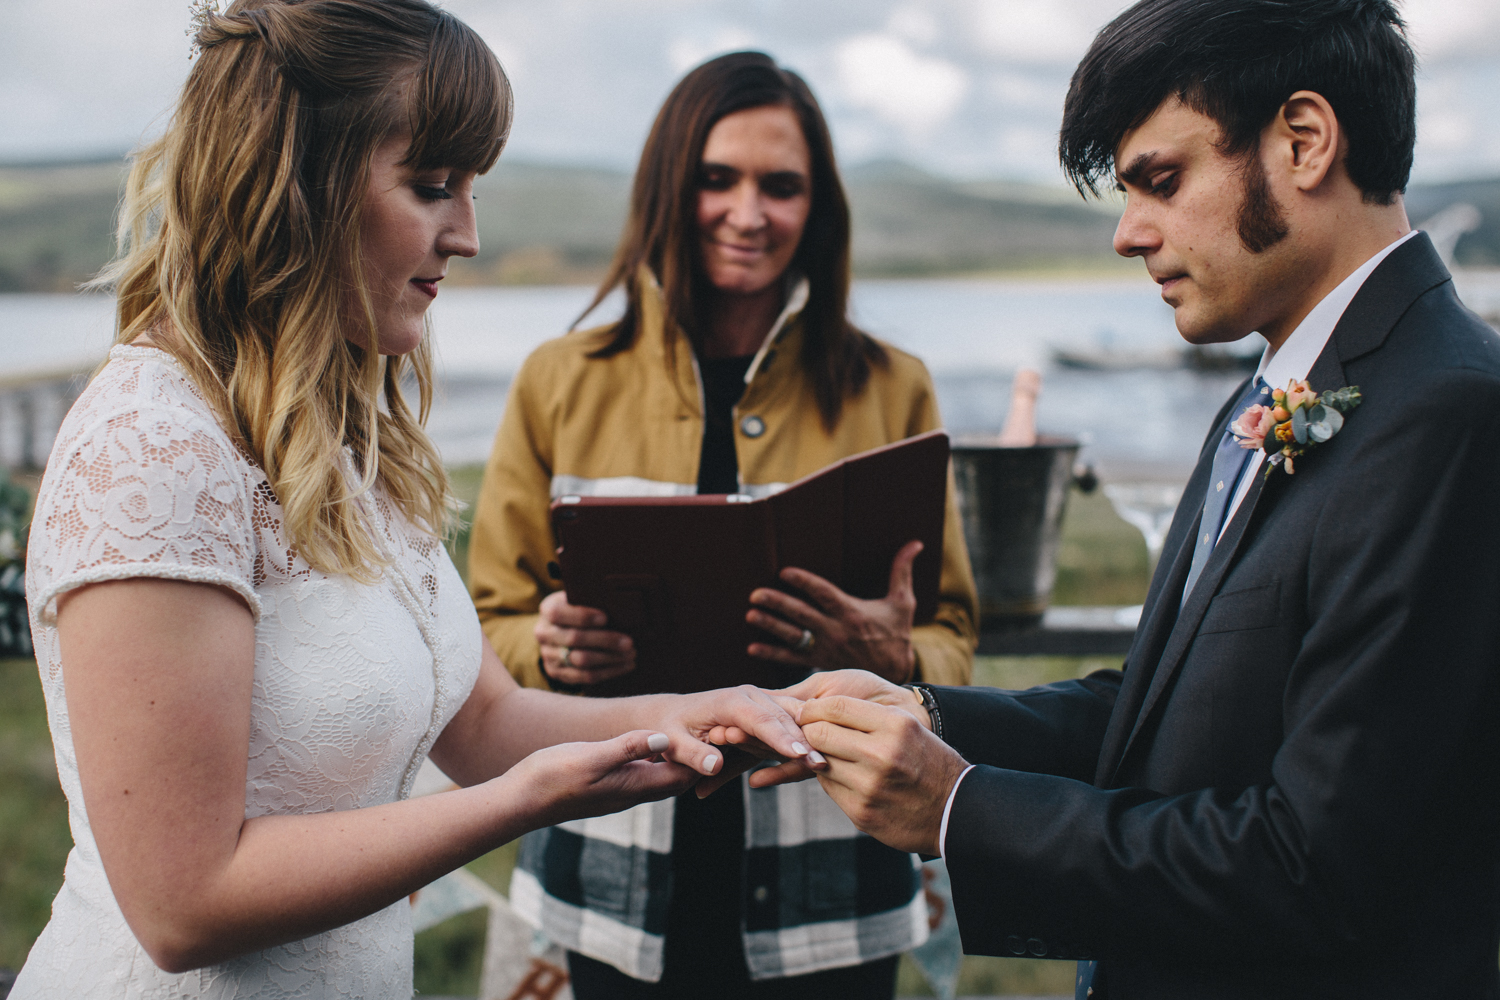 Point Reyes Inverness Wedding Photographer Rachelle Derouin-47.jpg